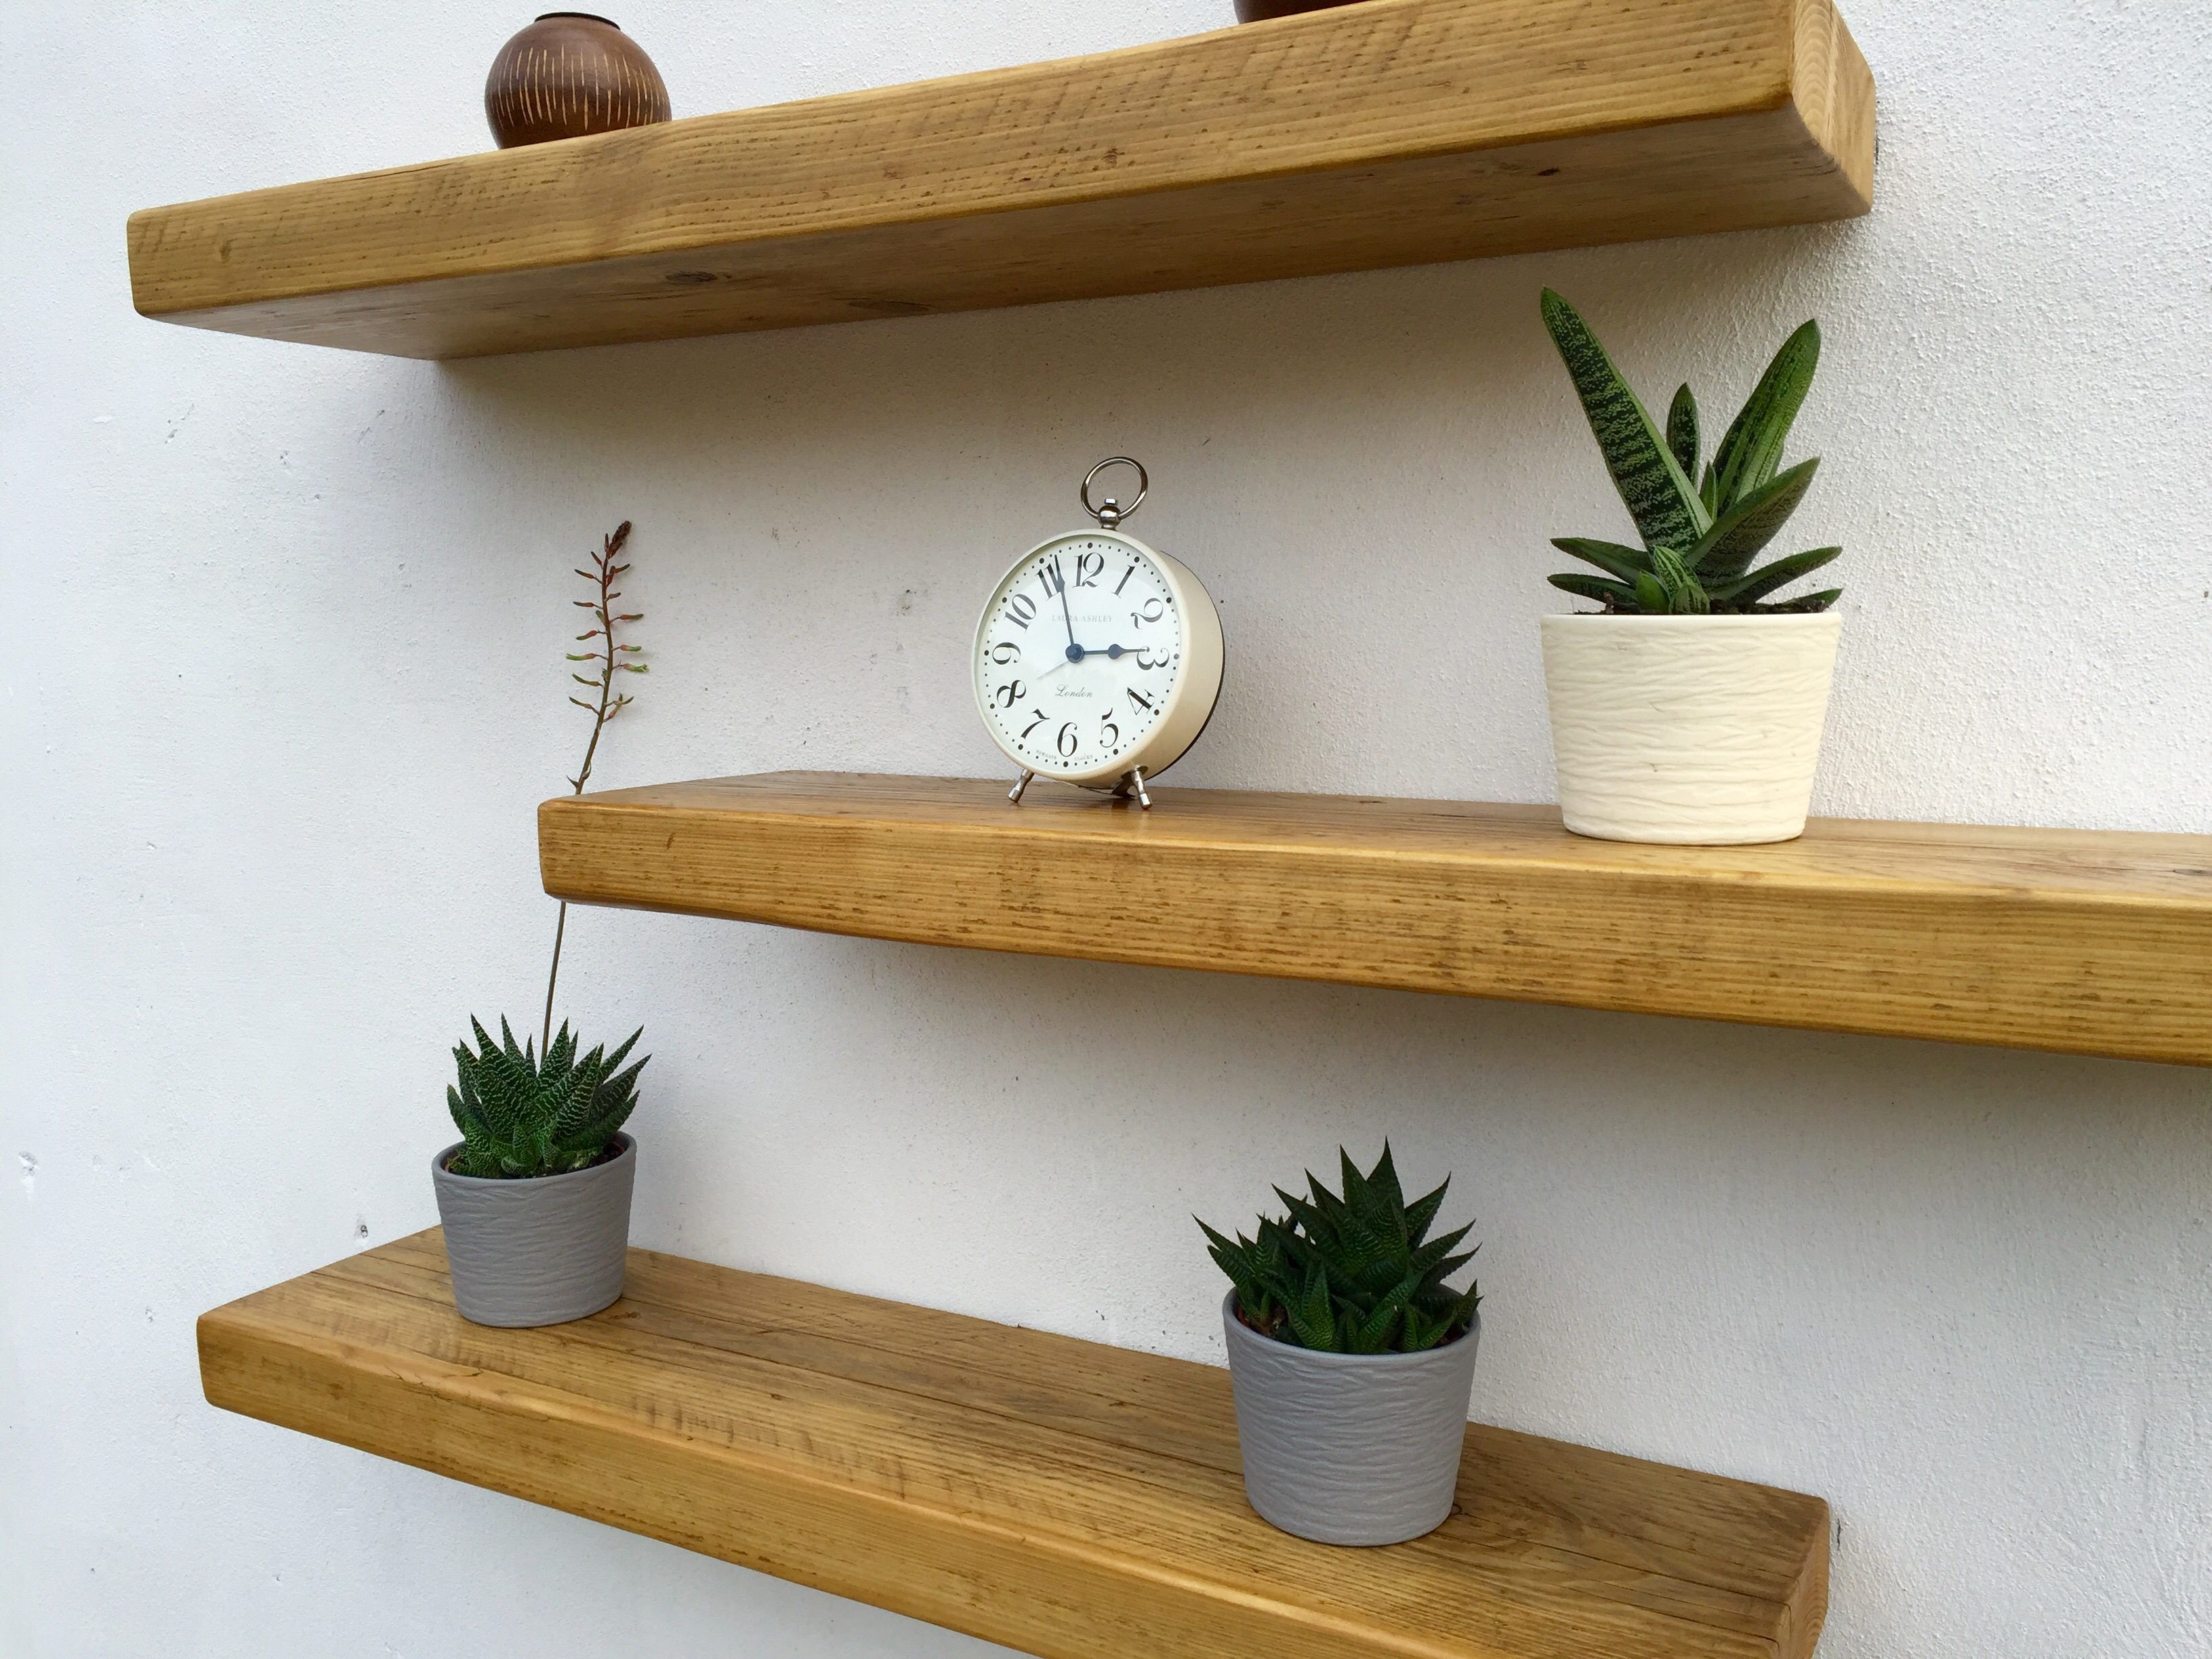 rustic wood floating shelves order great value british pine chunky shelf supplied with brackets fantastic quality handmade love the custom wall shelving unit cast iron decorative